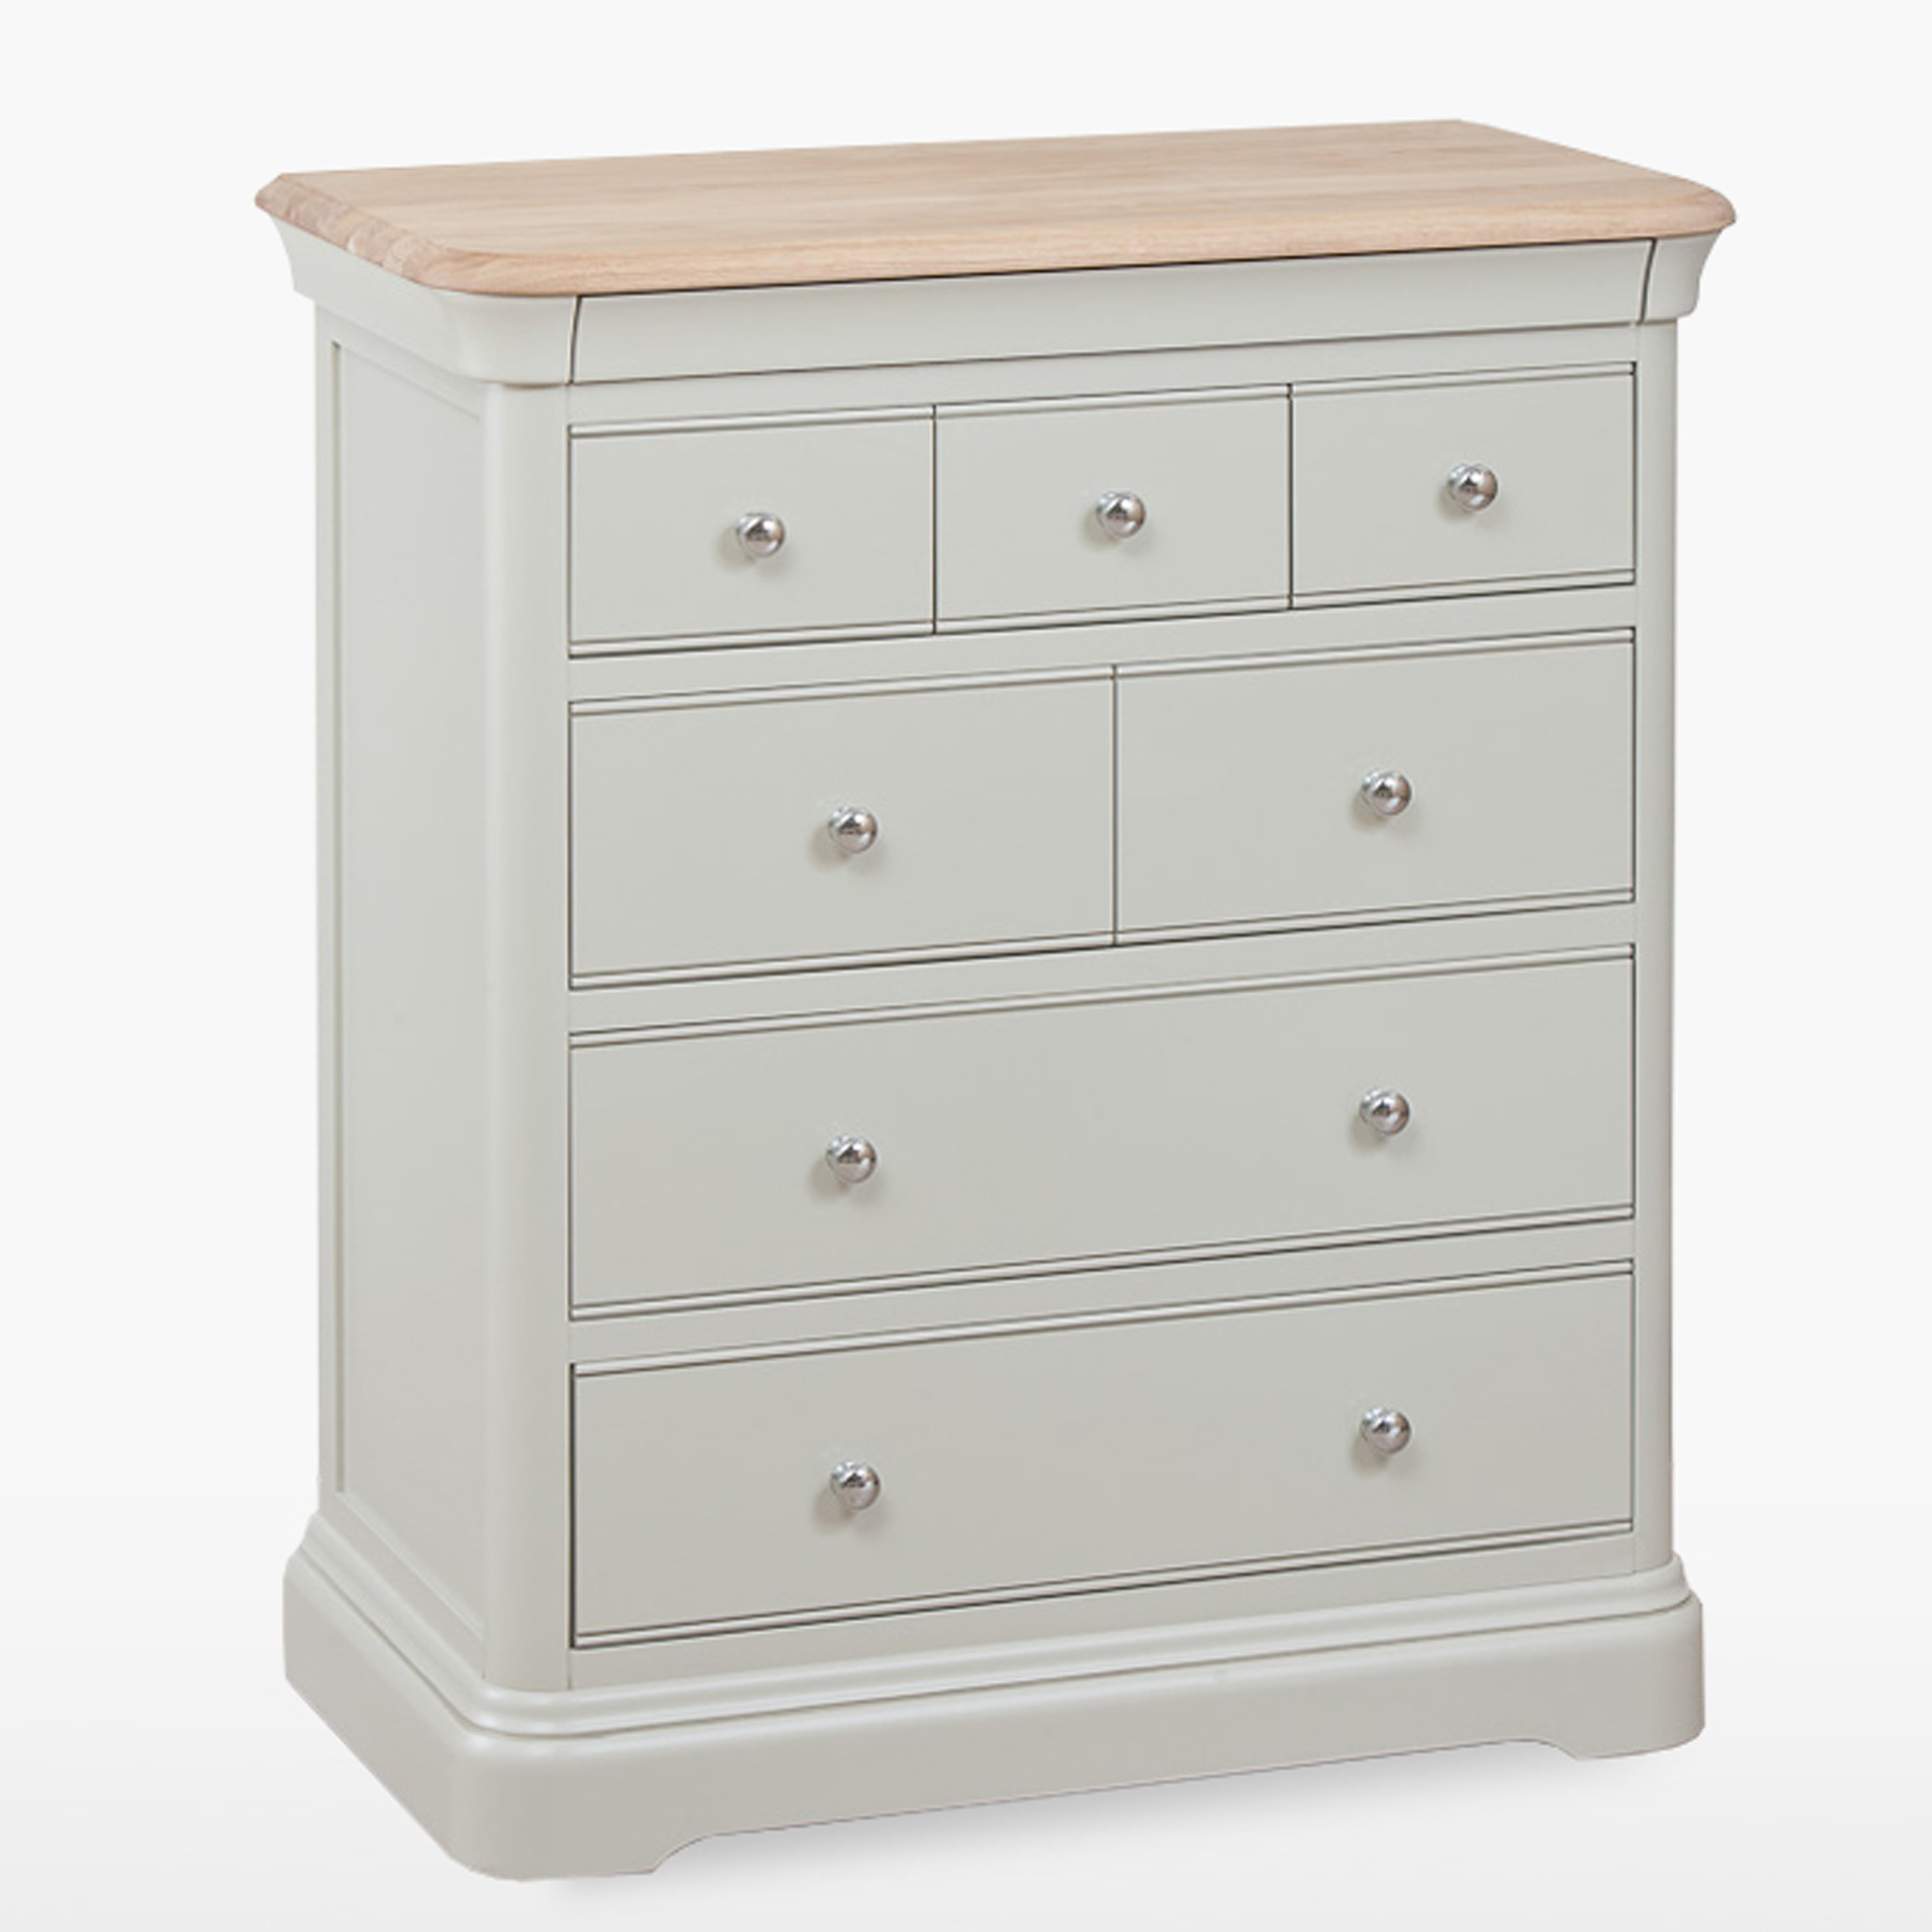 Cromer Seven Drawer Chest